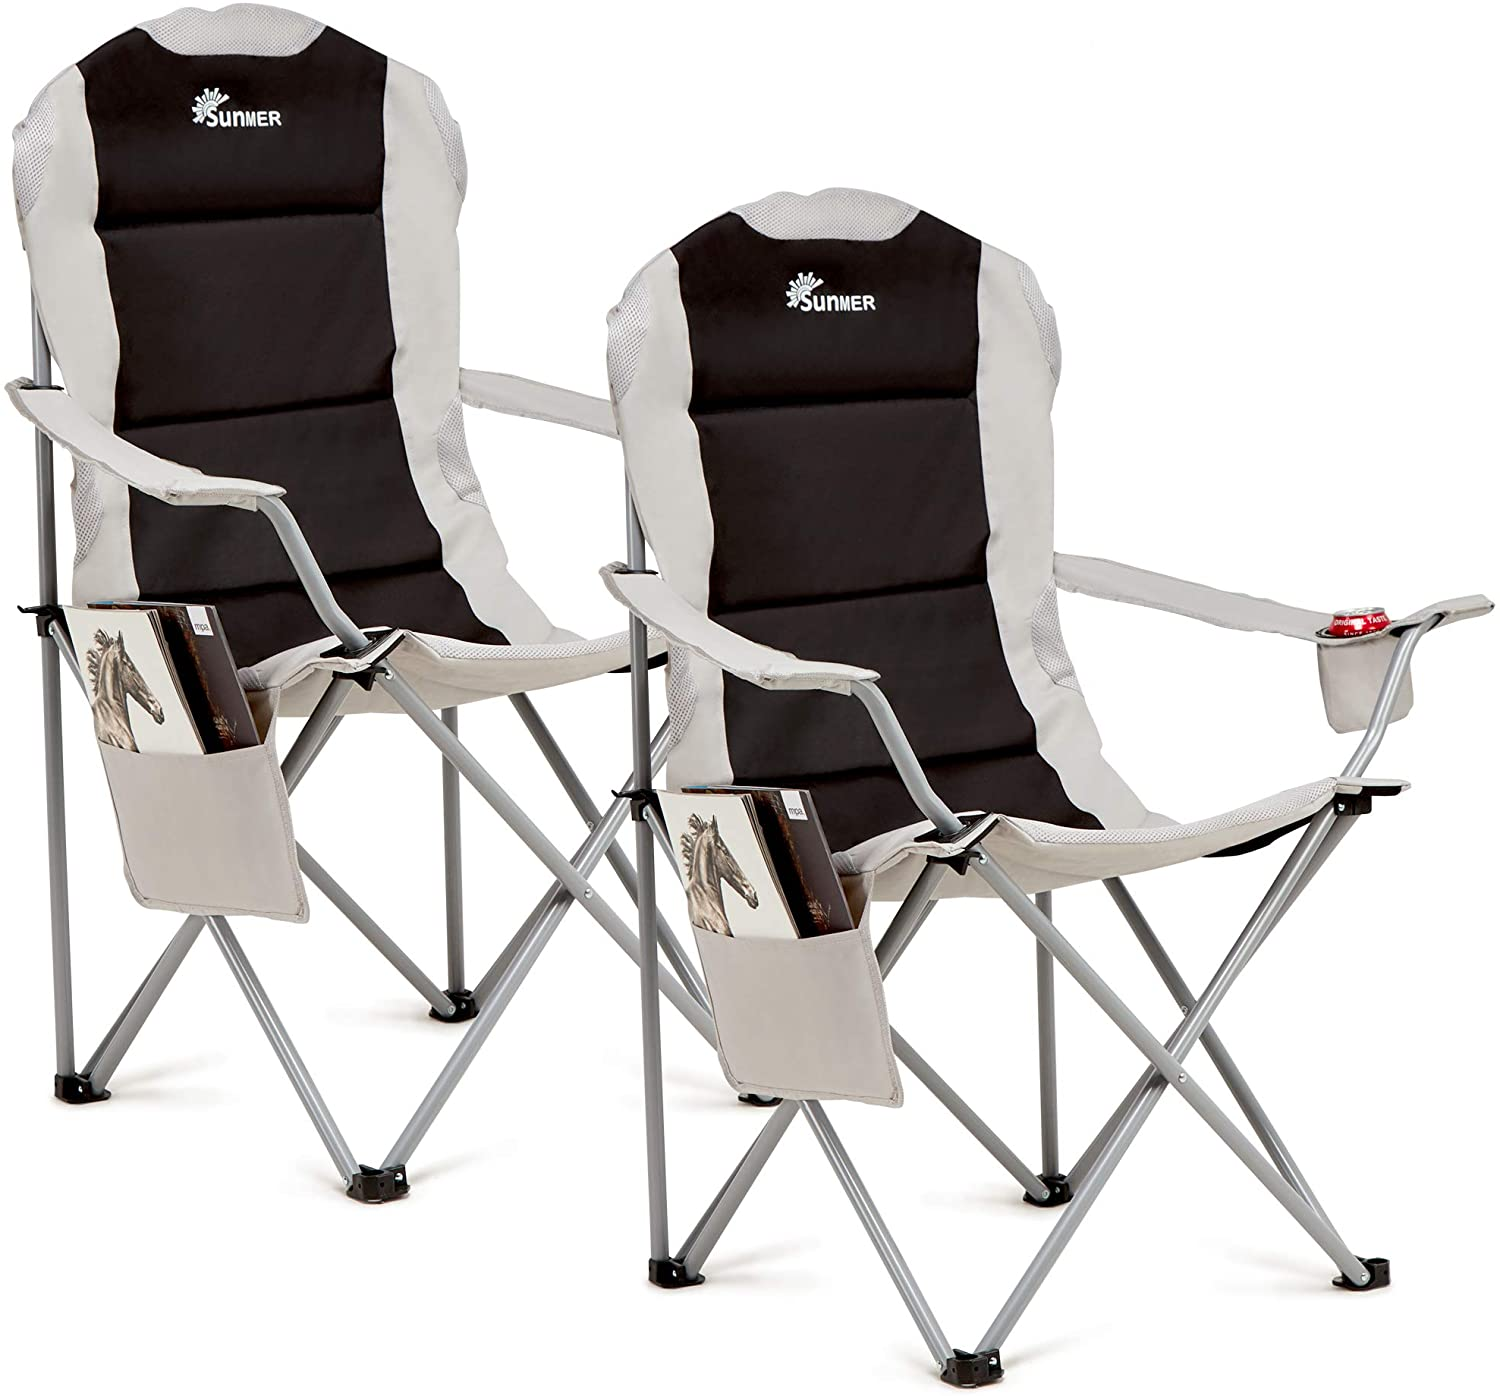 SUMMER Padded Camping Chairs